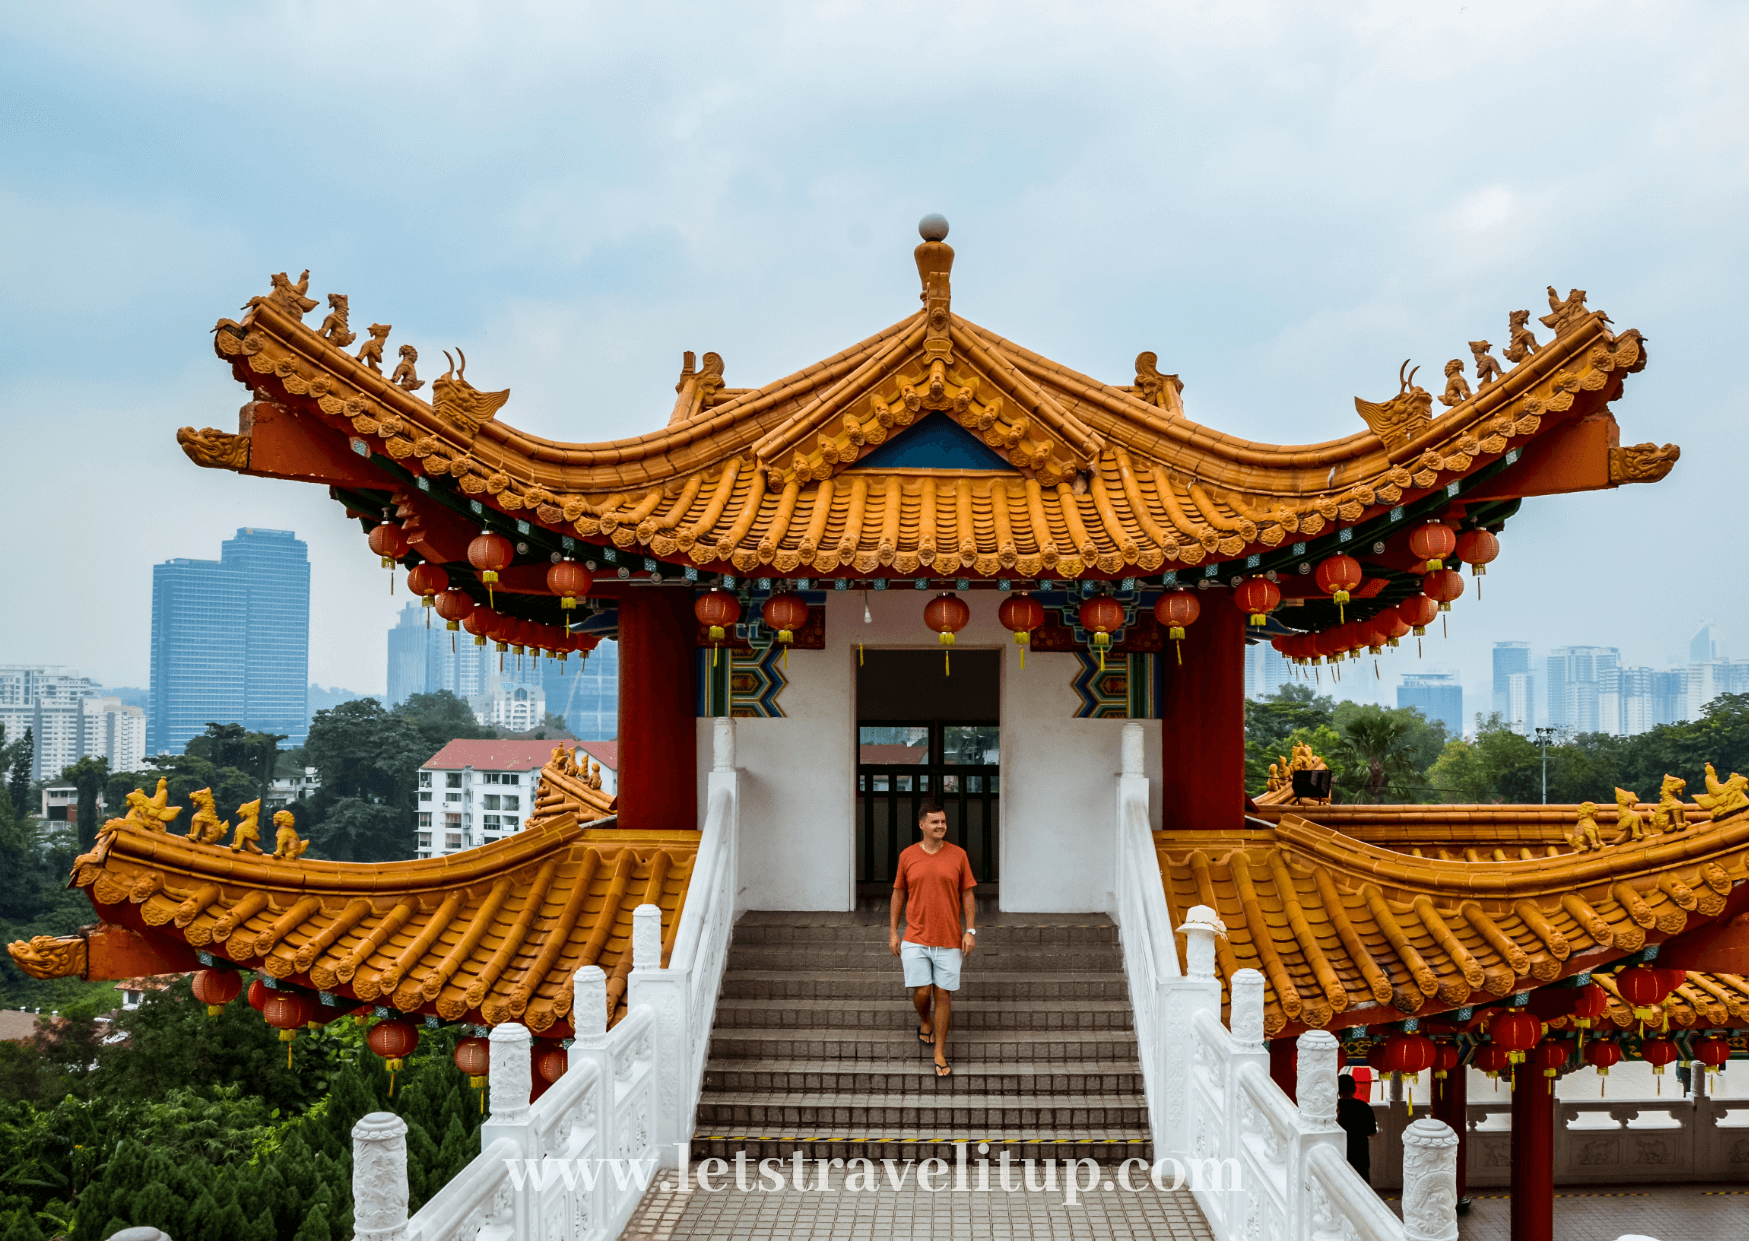 Thean Hou Temple is a Chinese temple located on the outskirts of Kuala Lumpur city in Malaysia